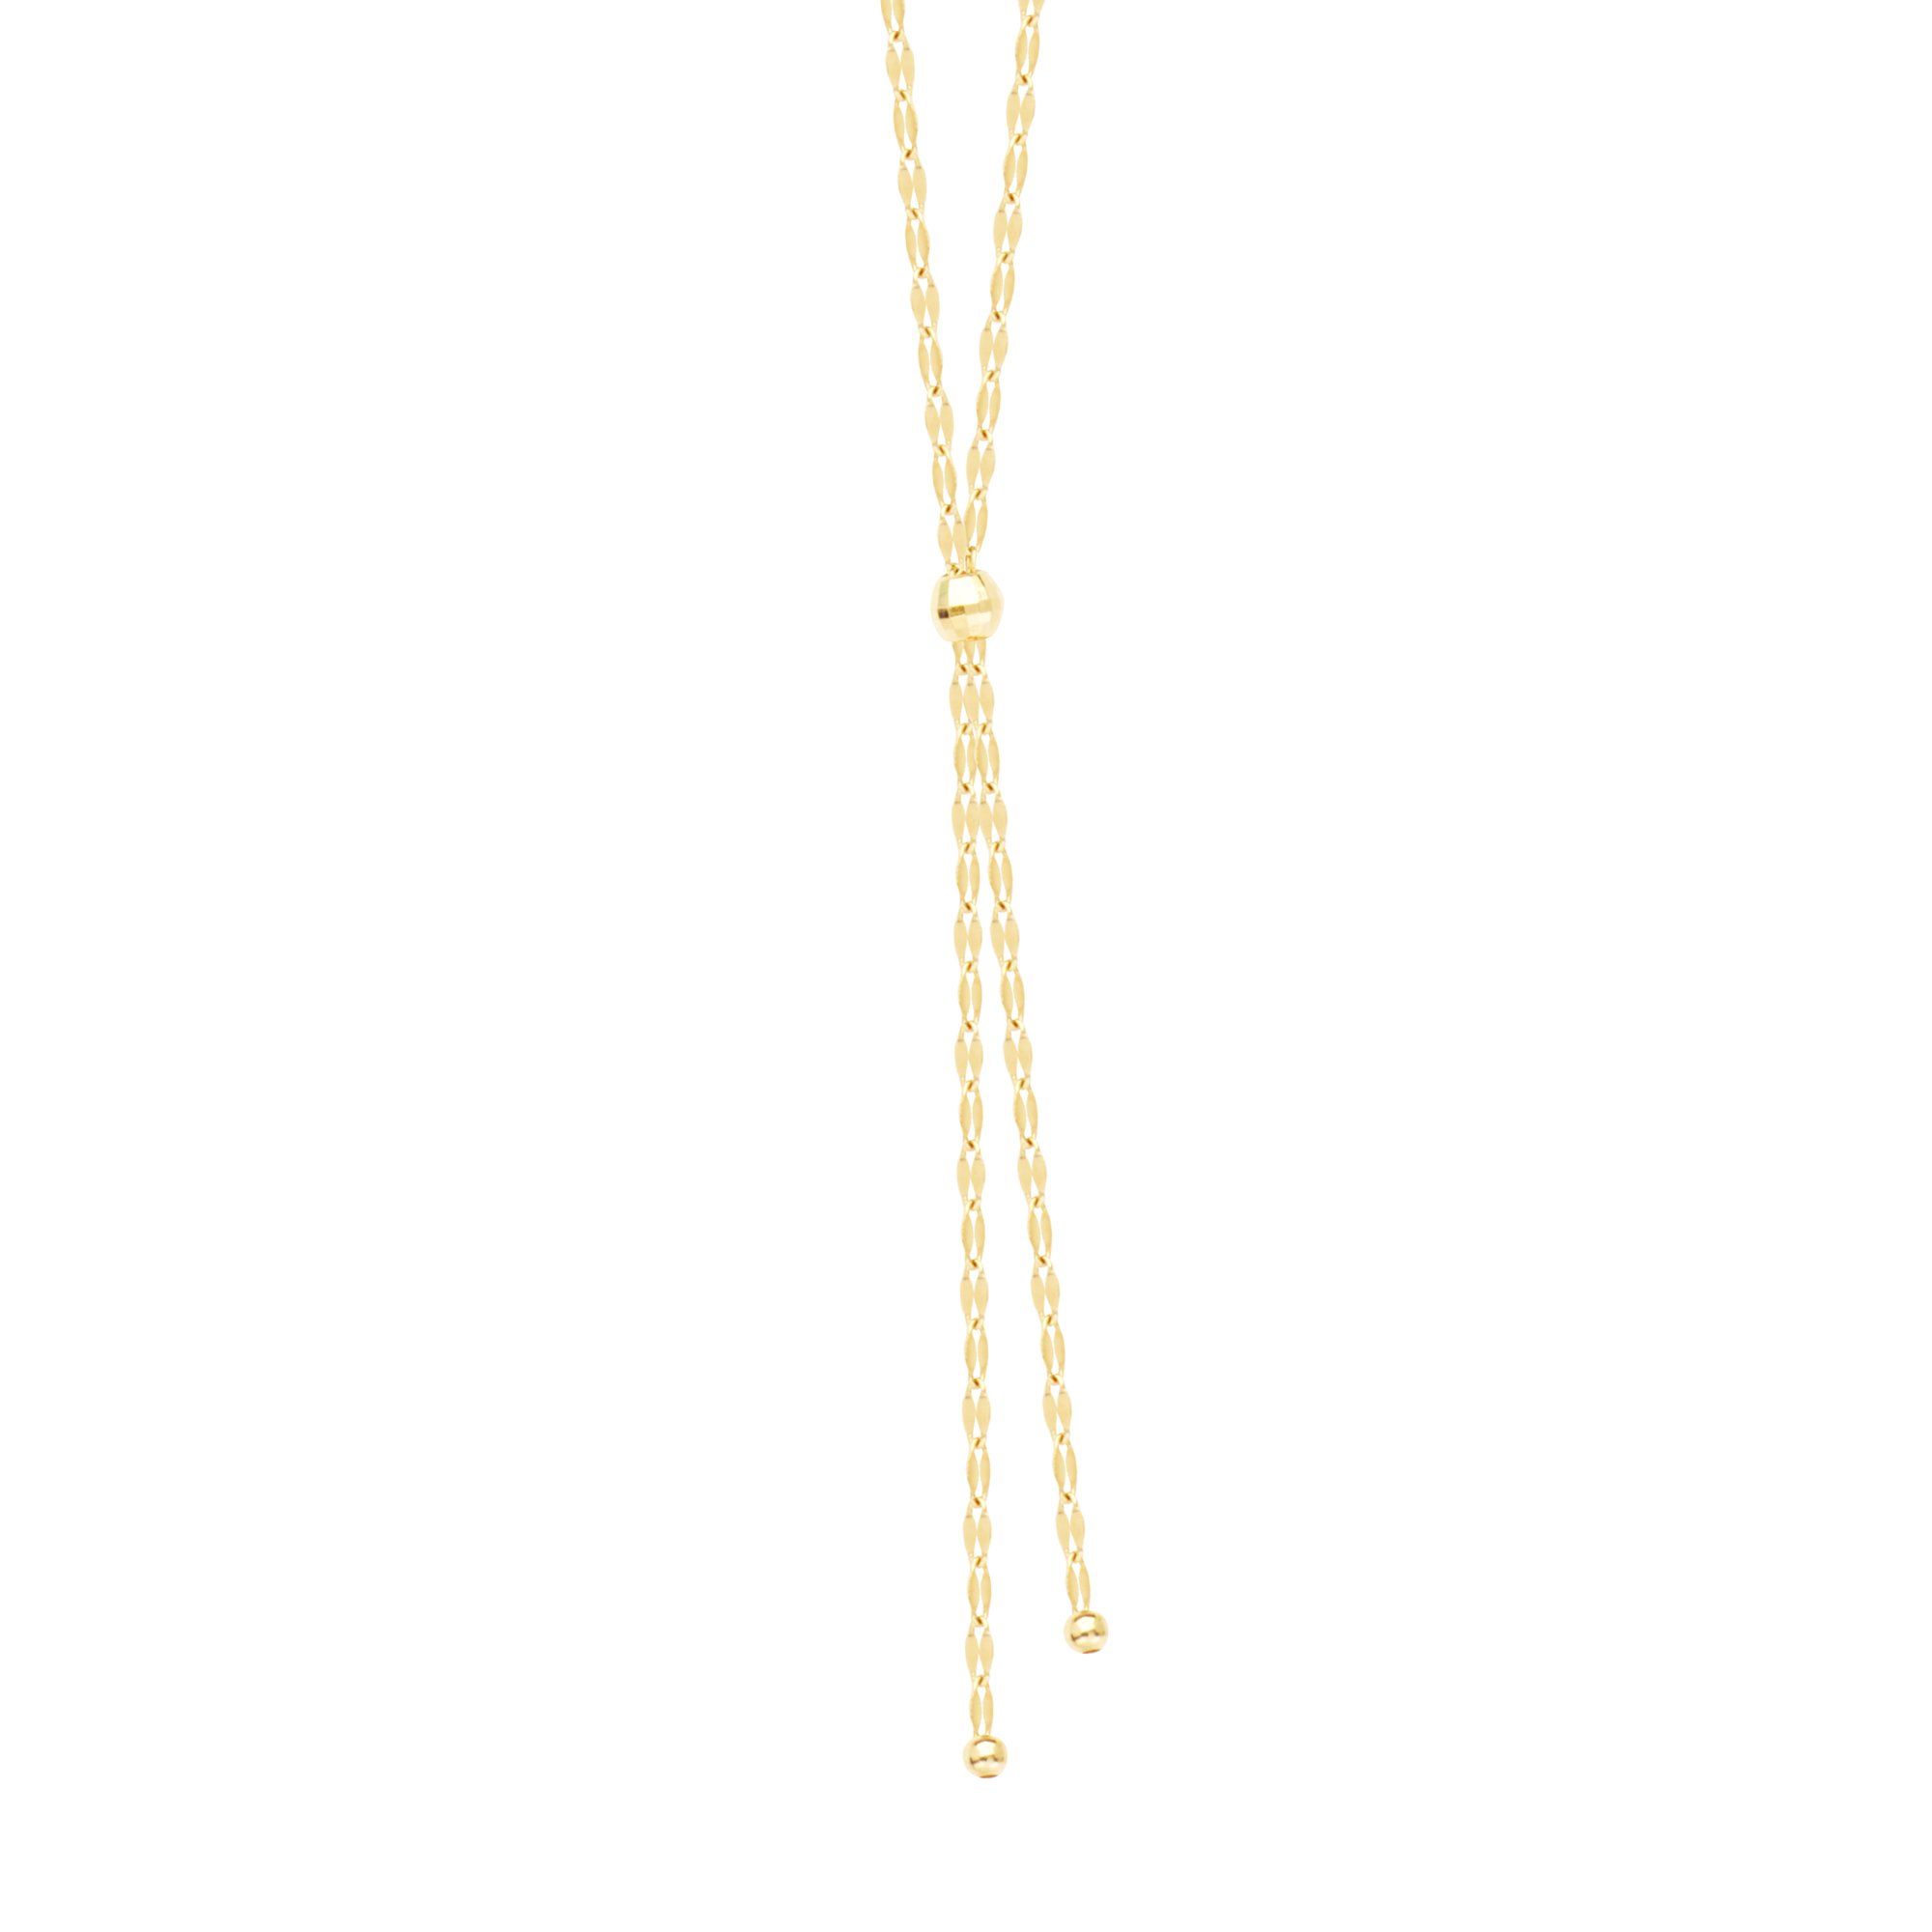 Hawley Street Y-style Necklace 14k Yellow Gold Hammered Forzentina Chain by AzureBella Jewelry